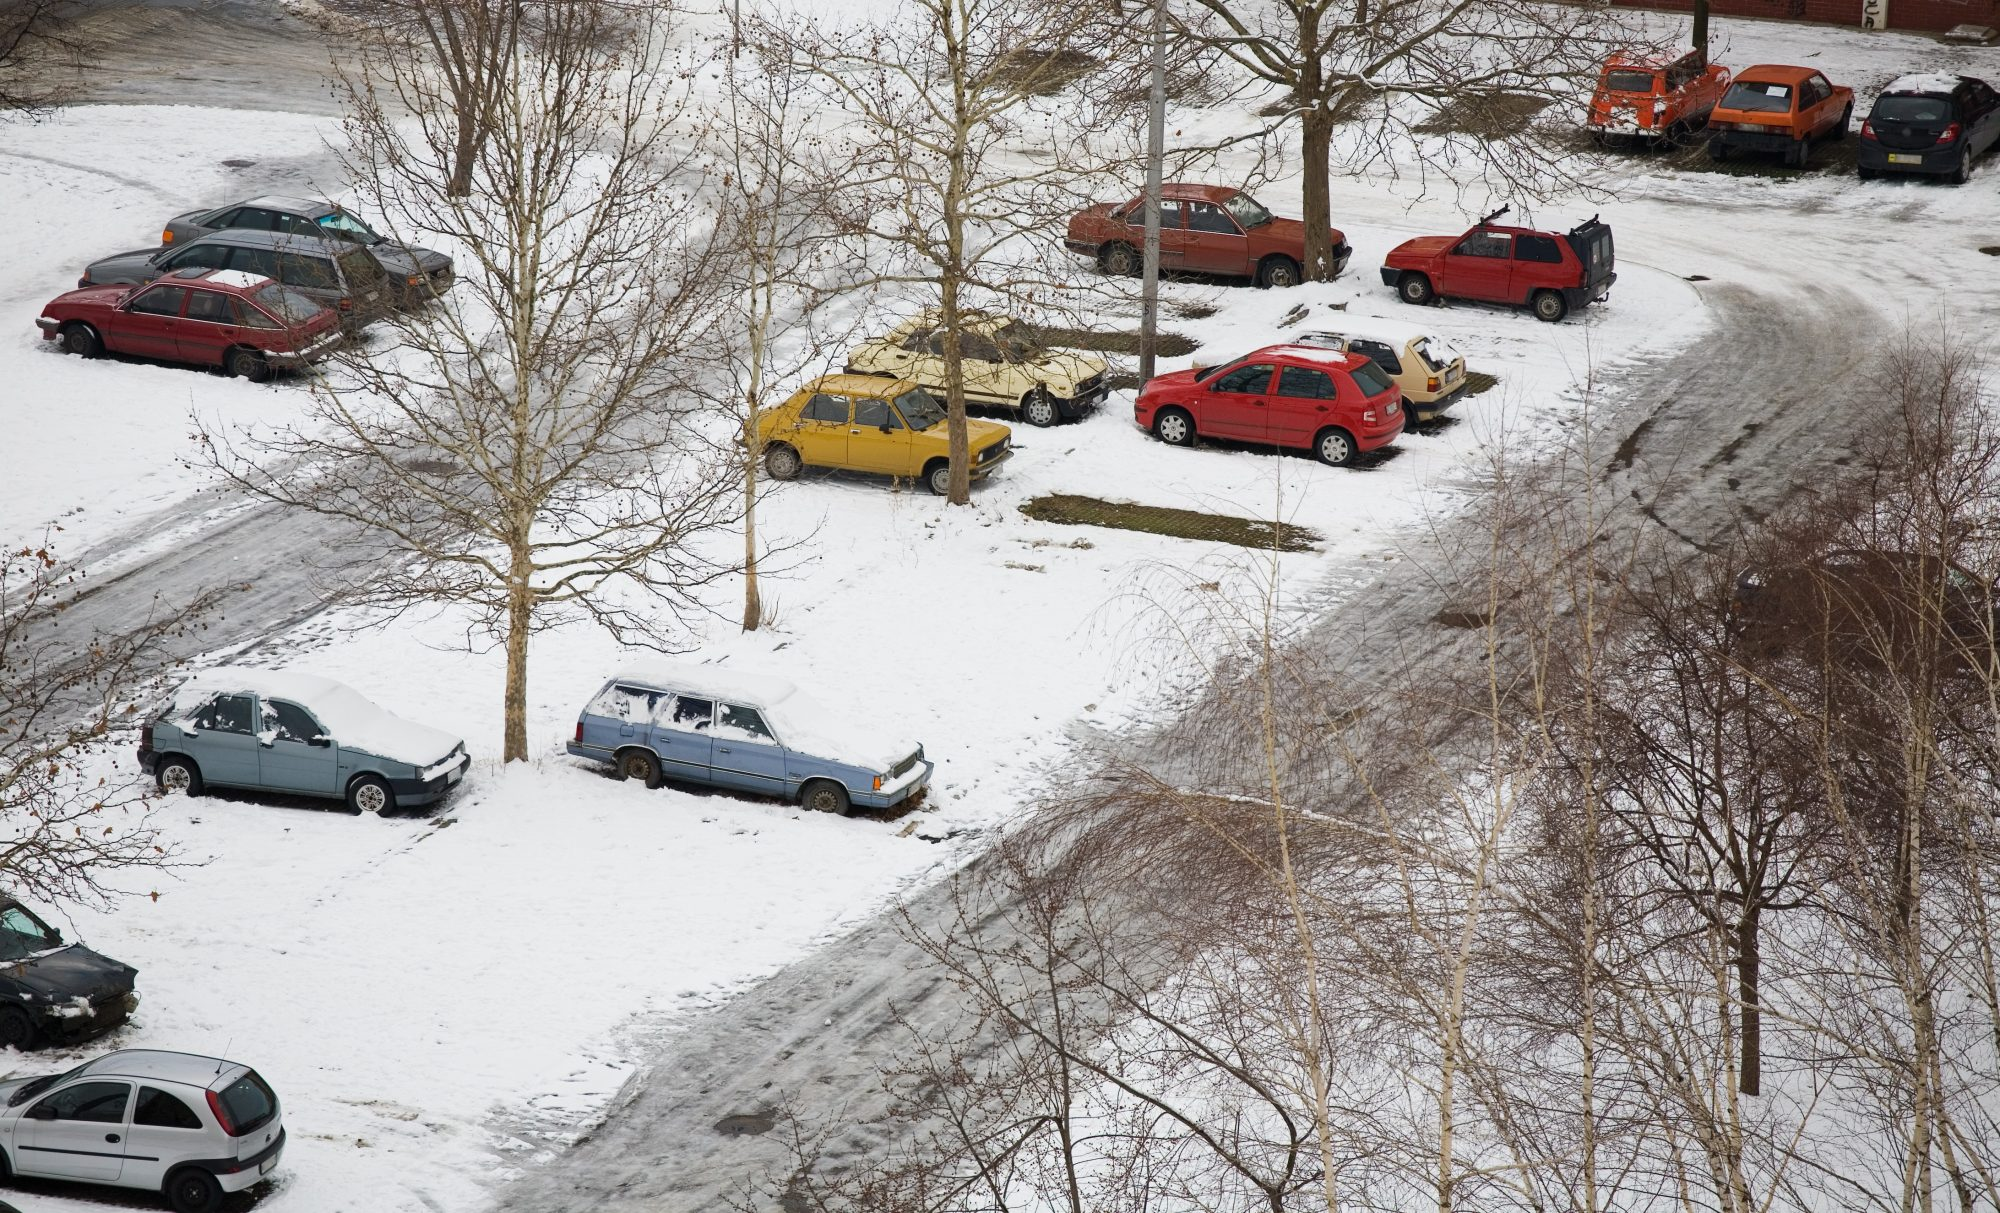 Cracked Pavement and Winter: What You Should Know